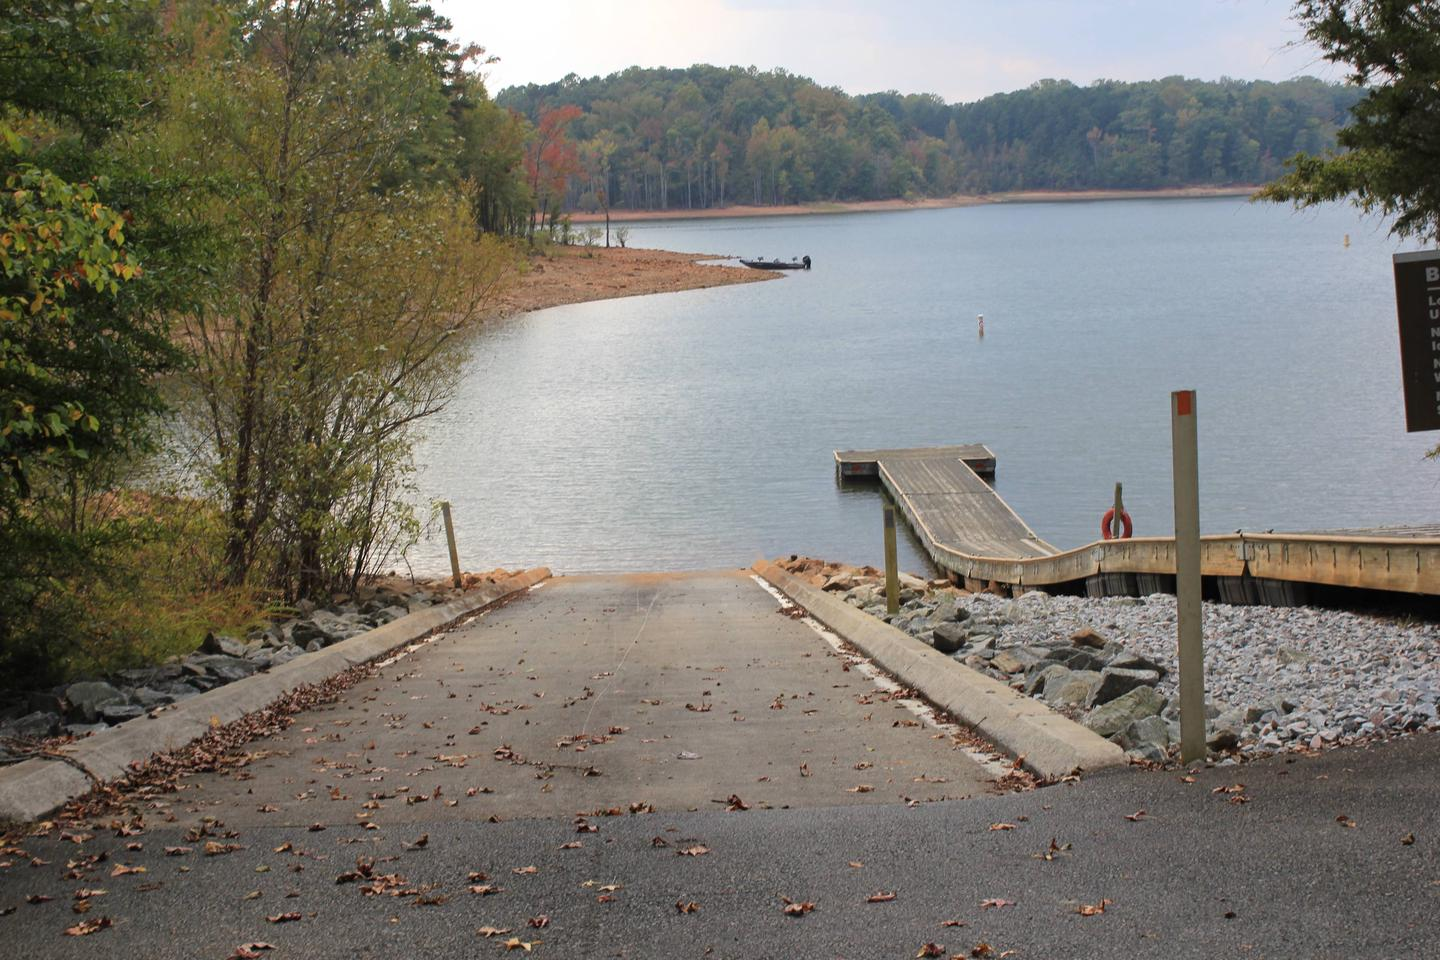 Rudd's Creek Campground Boat RampWelcome to Rudd's Creek Campground! This is a picture of the boat ramp that is located inside the campground. This boat ramp is only available to the campers to use. There is no parking for the boat ramp.